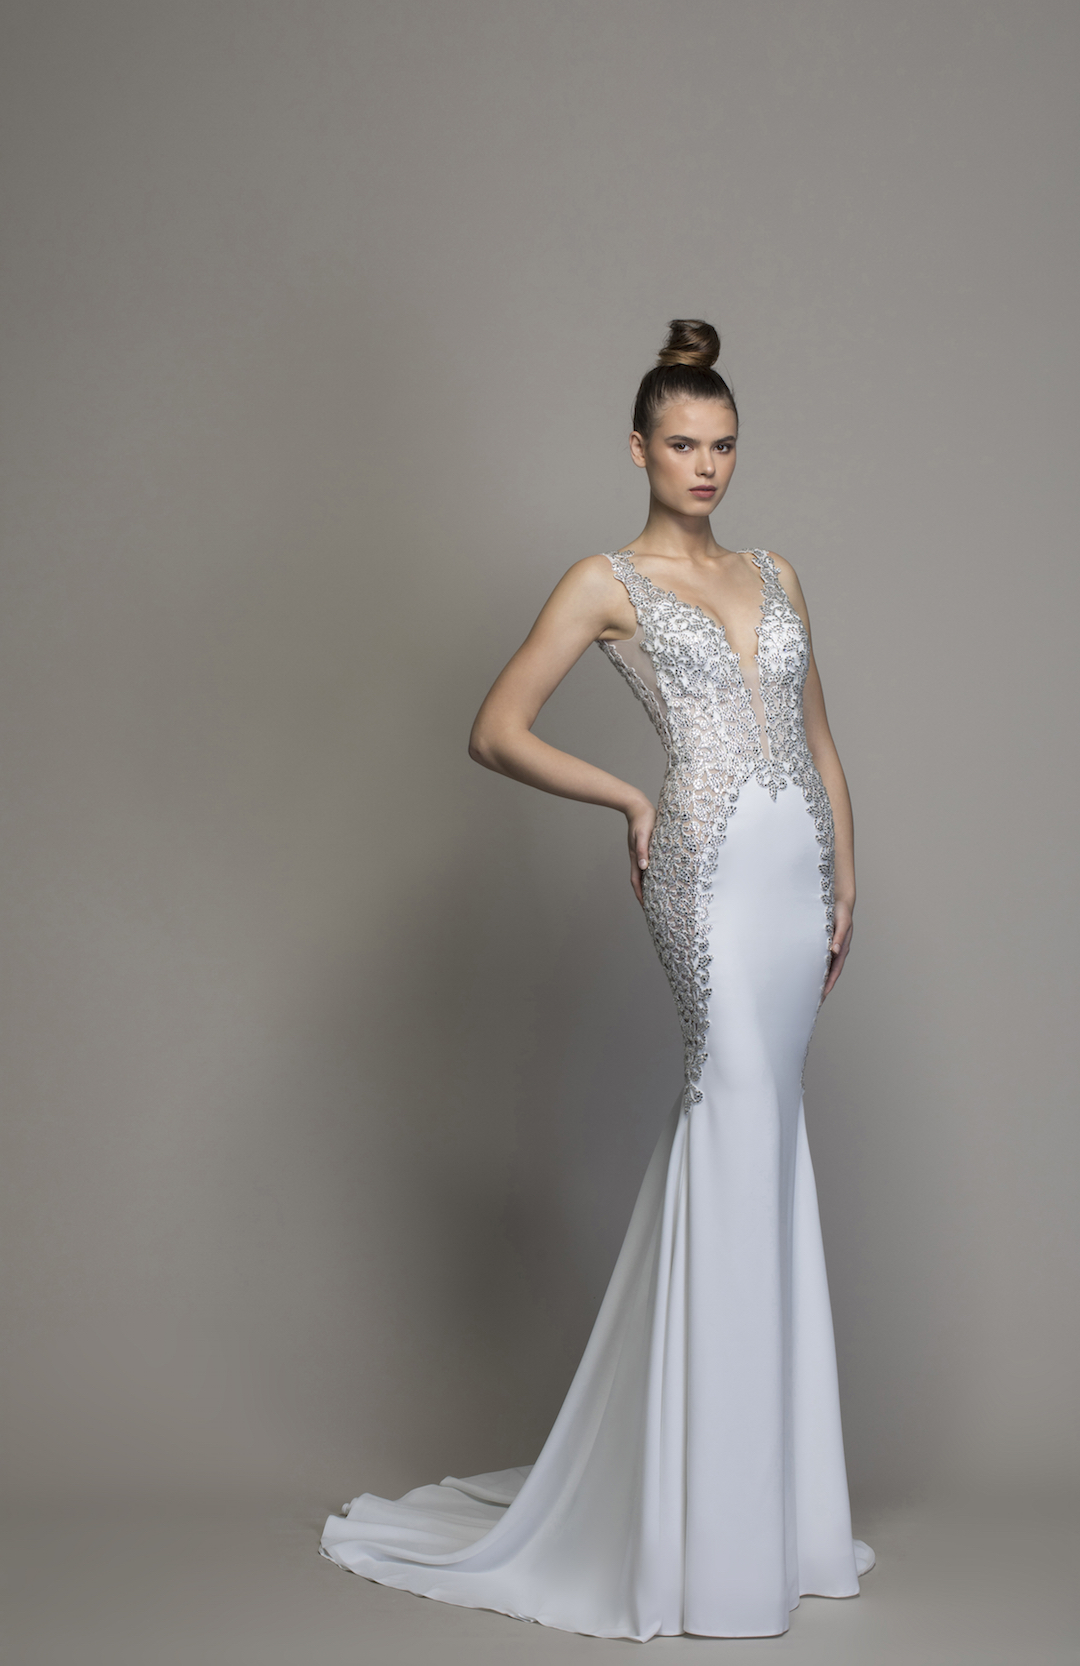 Pnina Tornai's new LOVE 2020 Collection is out! This is style 14752